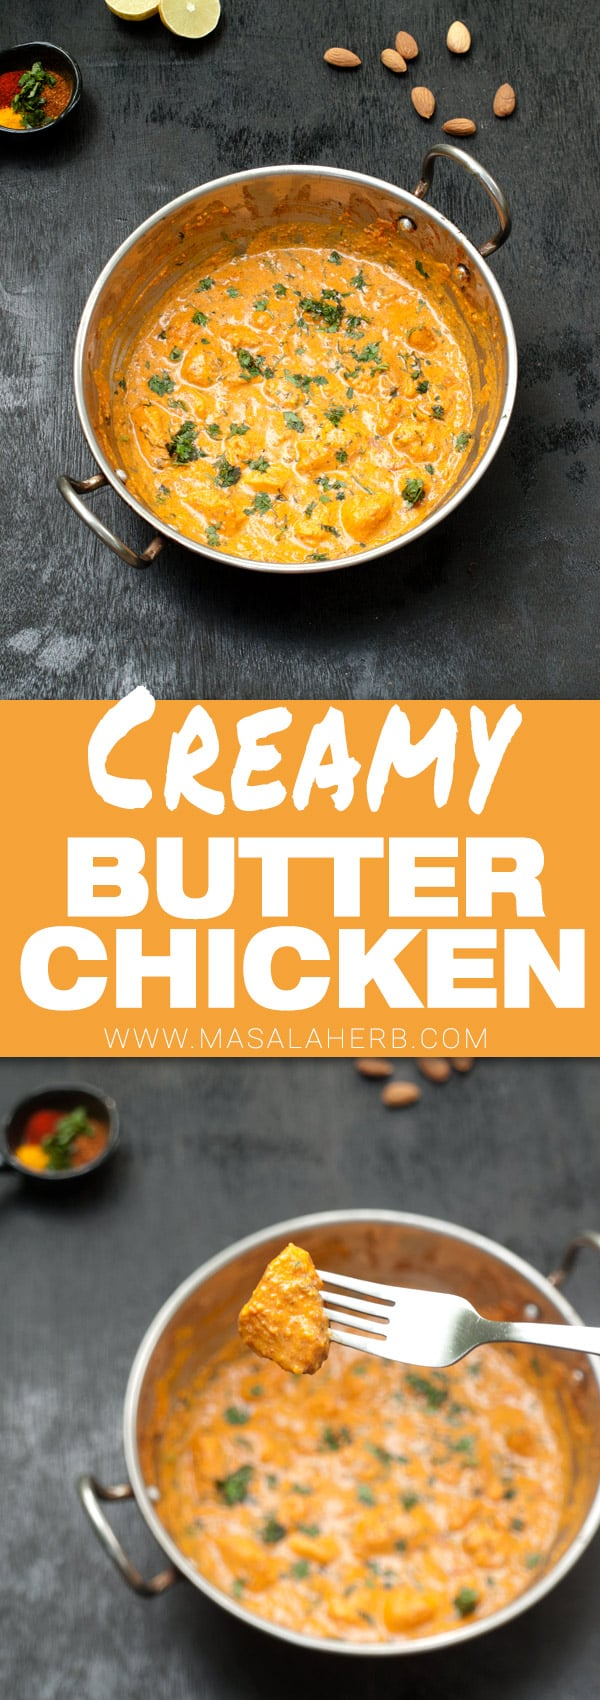 Easy Butter Chicken Recipe - Murgh Makhani with creamy spiced curry and easily prepared with spice blends, masalas, www.MasalaHerb.com #curry #indian #chicken #masalaherb